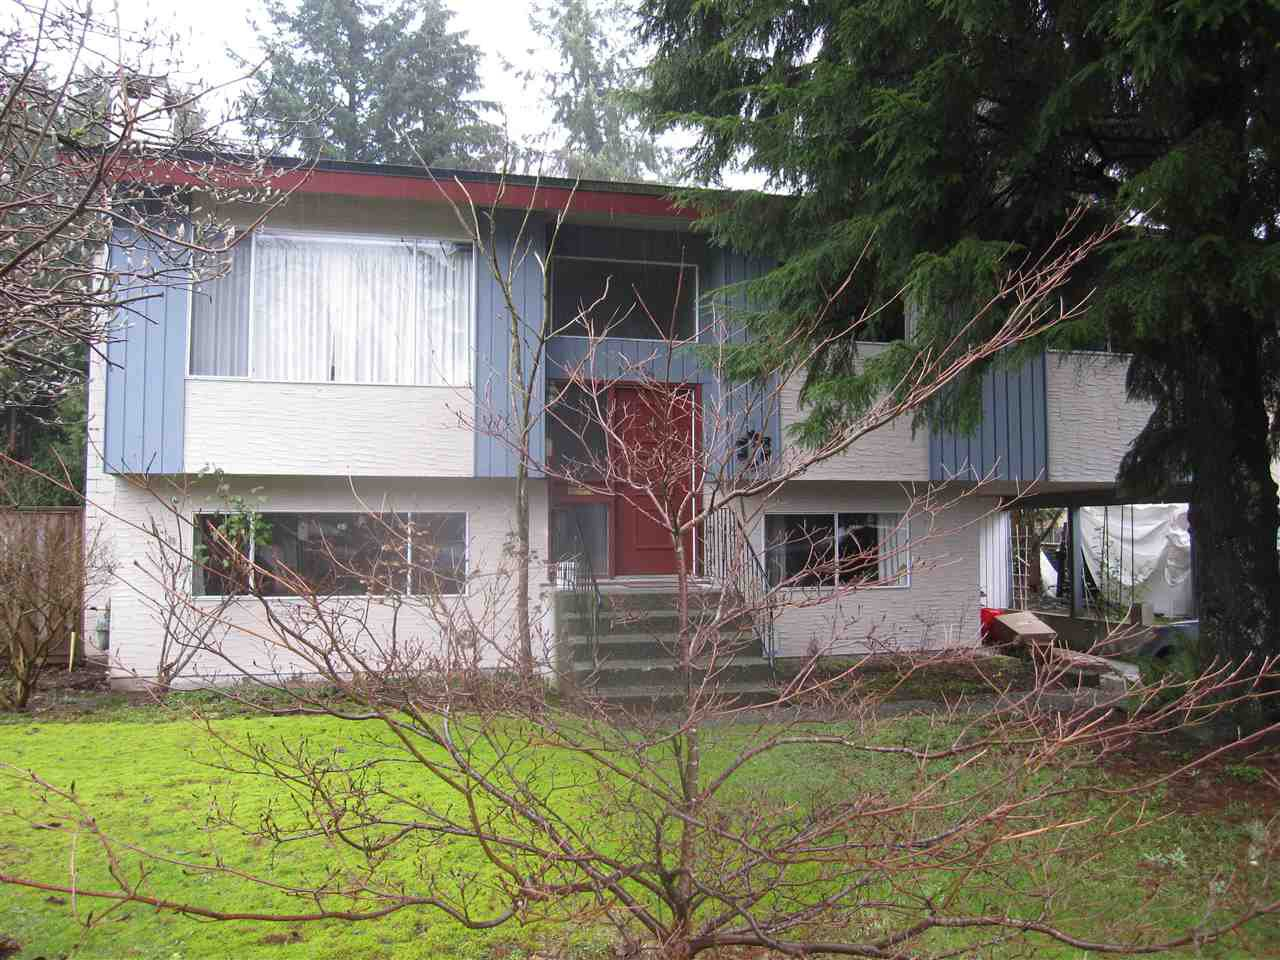 Main Photo: 11724 209 Street in Maple Ridge: Southwest Maple Ridge House for sale : MLS®# R2434650